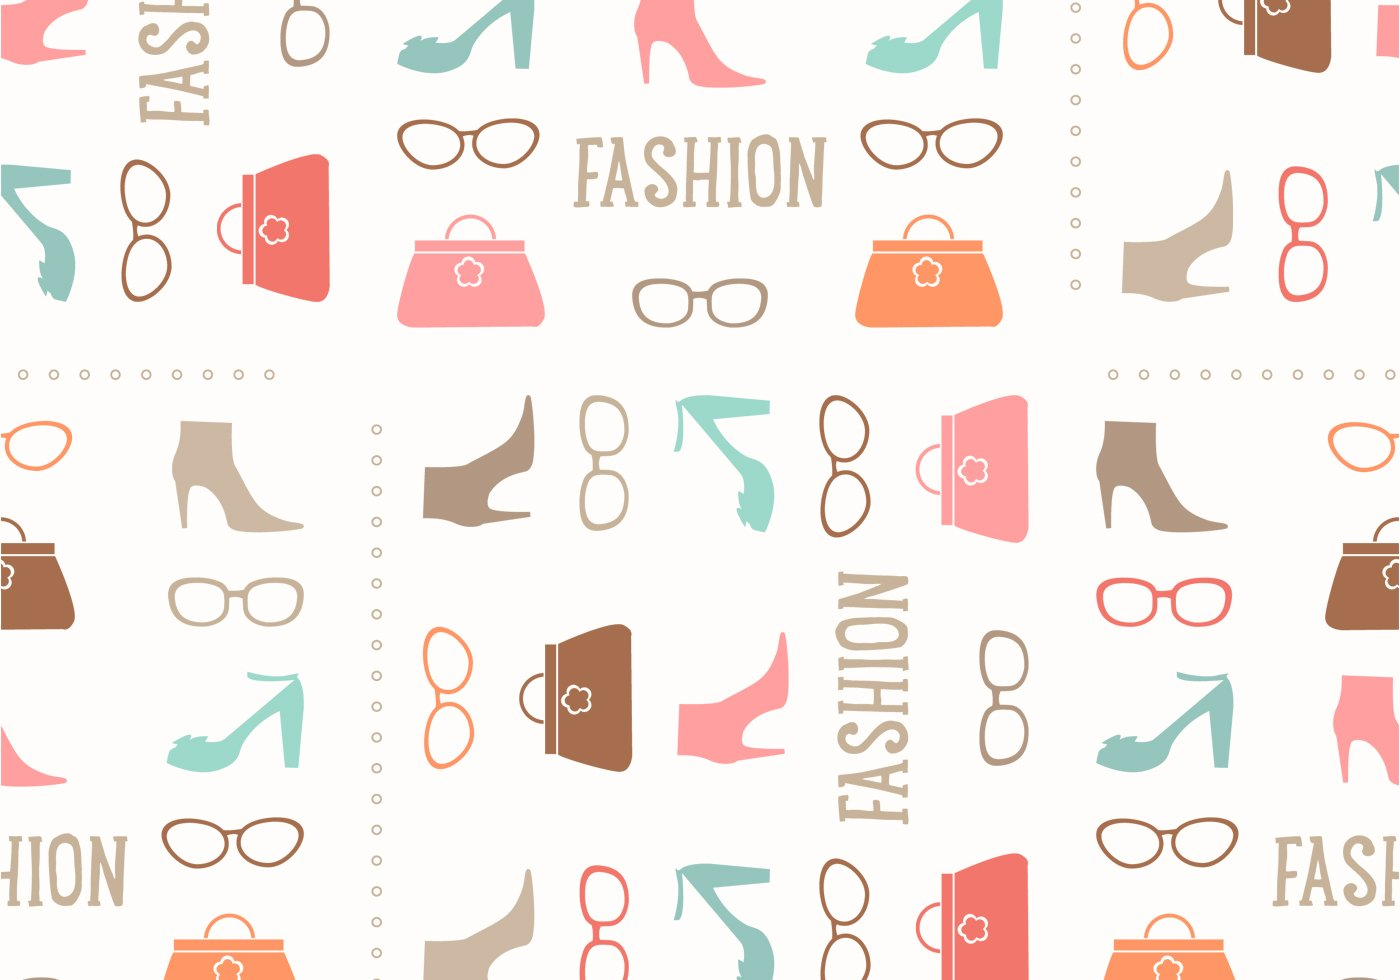 Proper Fit by Connie Crawford Fashion Patterns Fashion patterns free download